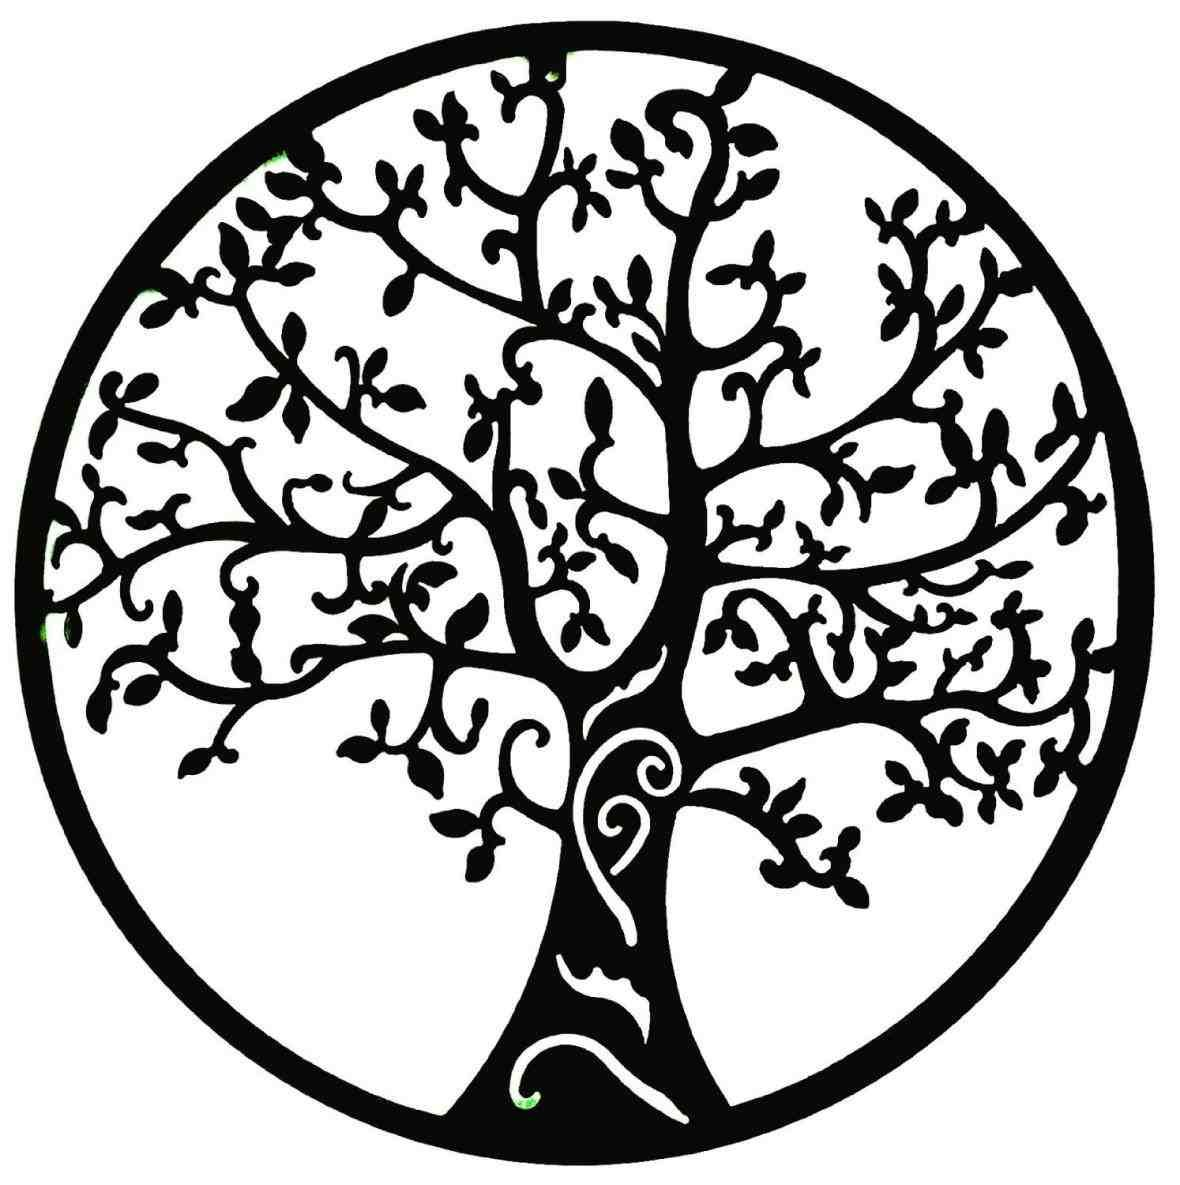 afbeeldingsresultaat voor life tree fa rajzok pinterest tattoo rh pinterest co uk tree of life clip art images tree of life silhouette clip art